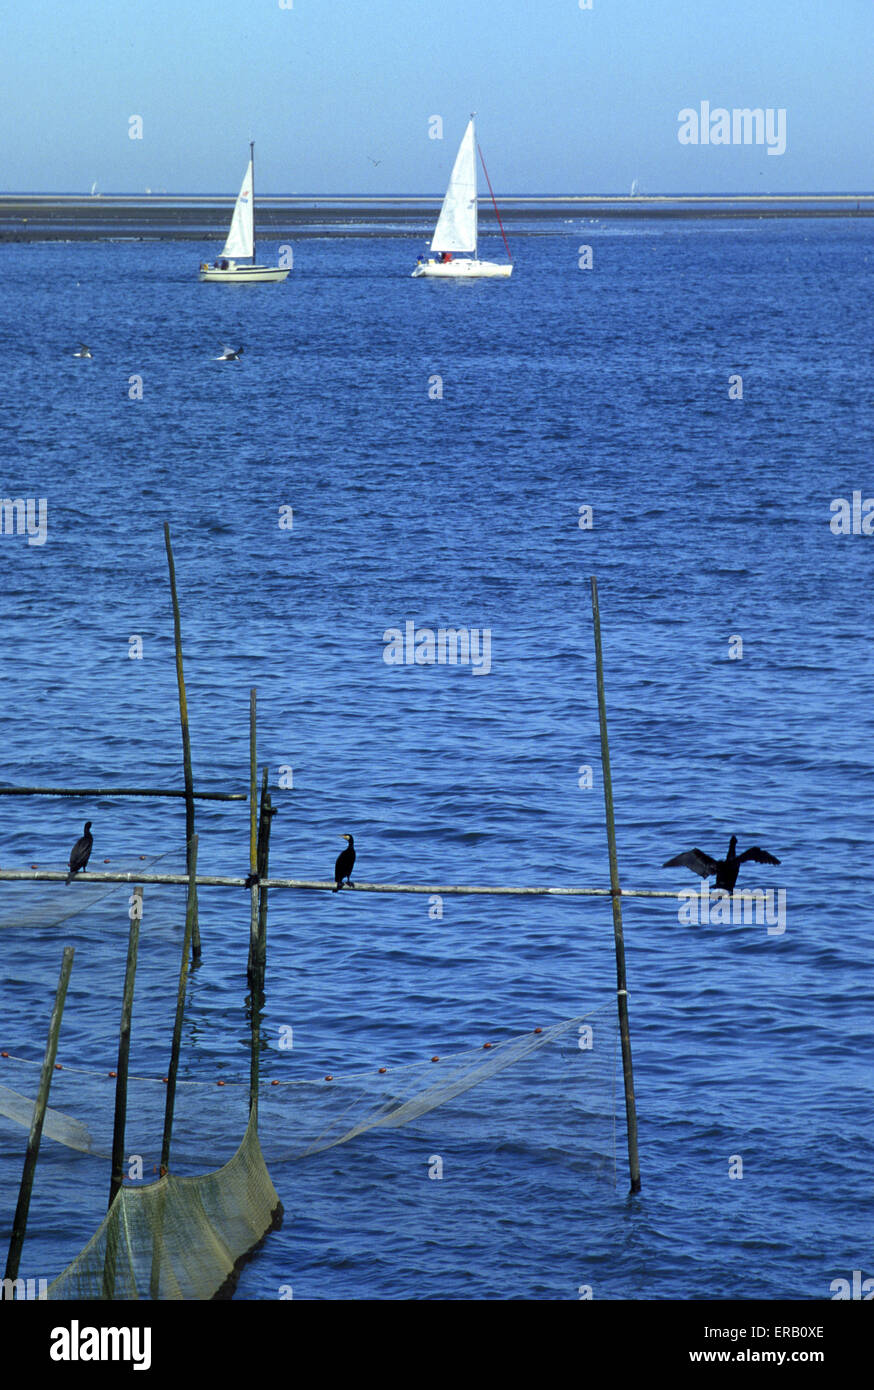 NLD, Netherlands, boats at Goree-Overflakkee in Zeeland.  NLD, Niederlande, Boote vor Goree-Overflakkee in Zeeland. - Stock Image